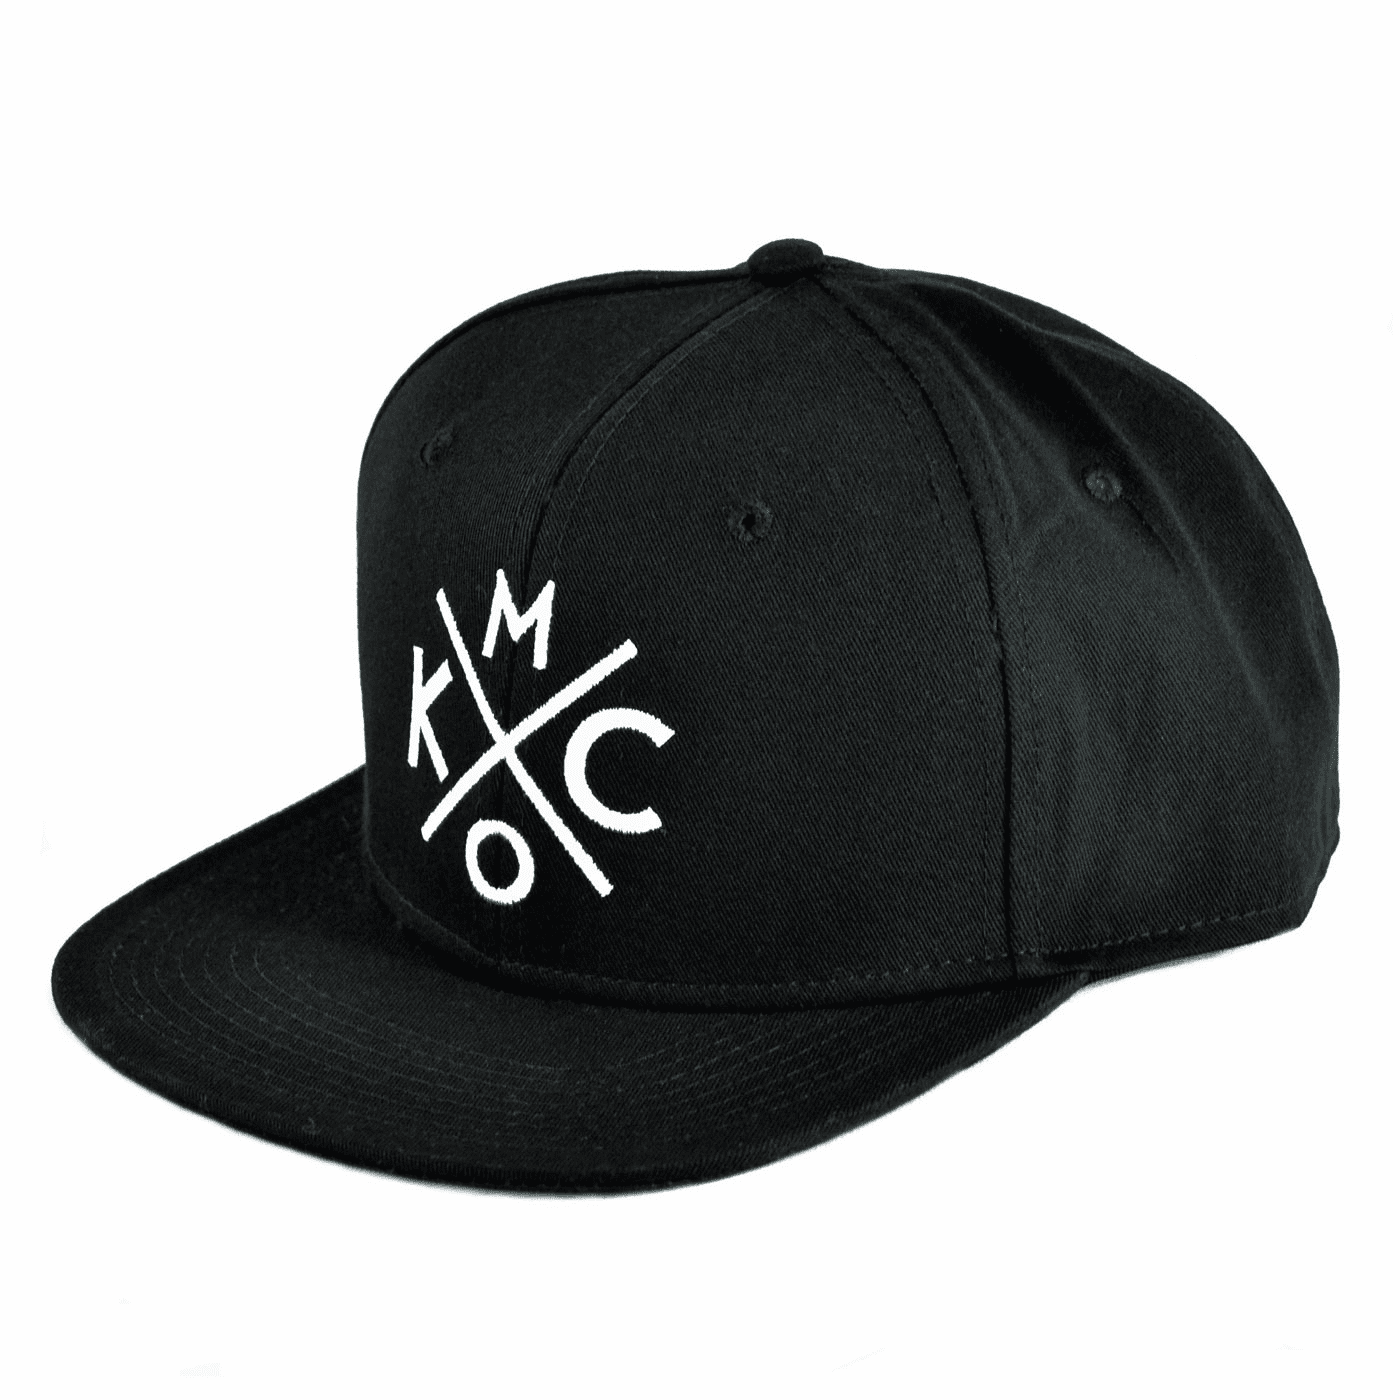 KCMO Black/White Flat Bill Hat